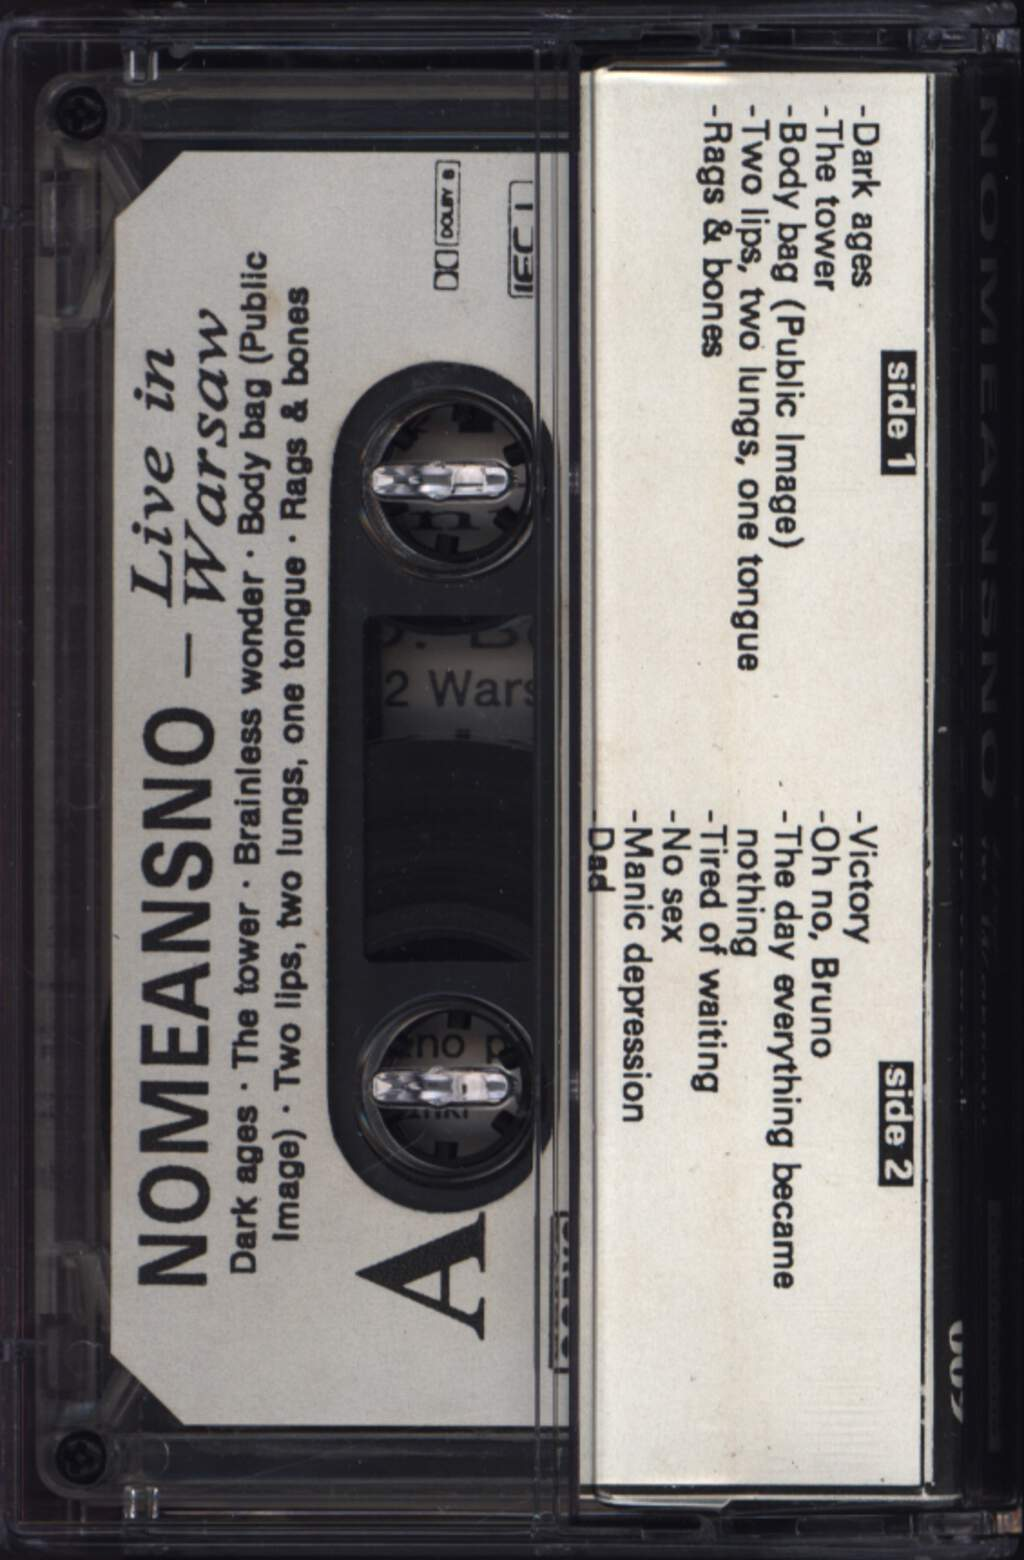 Nomeansno: Live In Warsaw, Compact Cassette